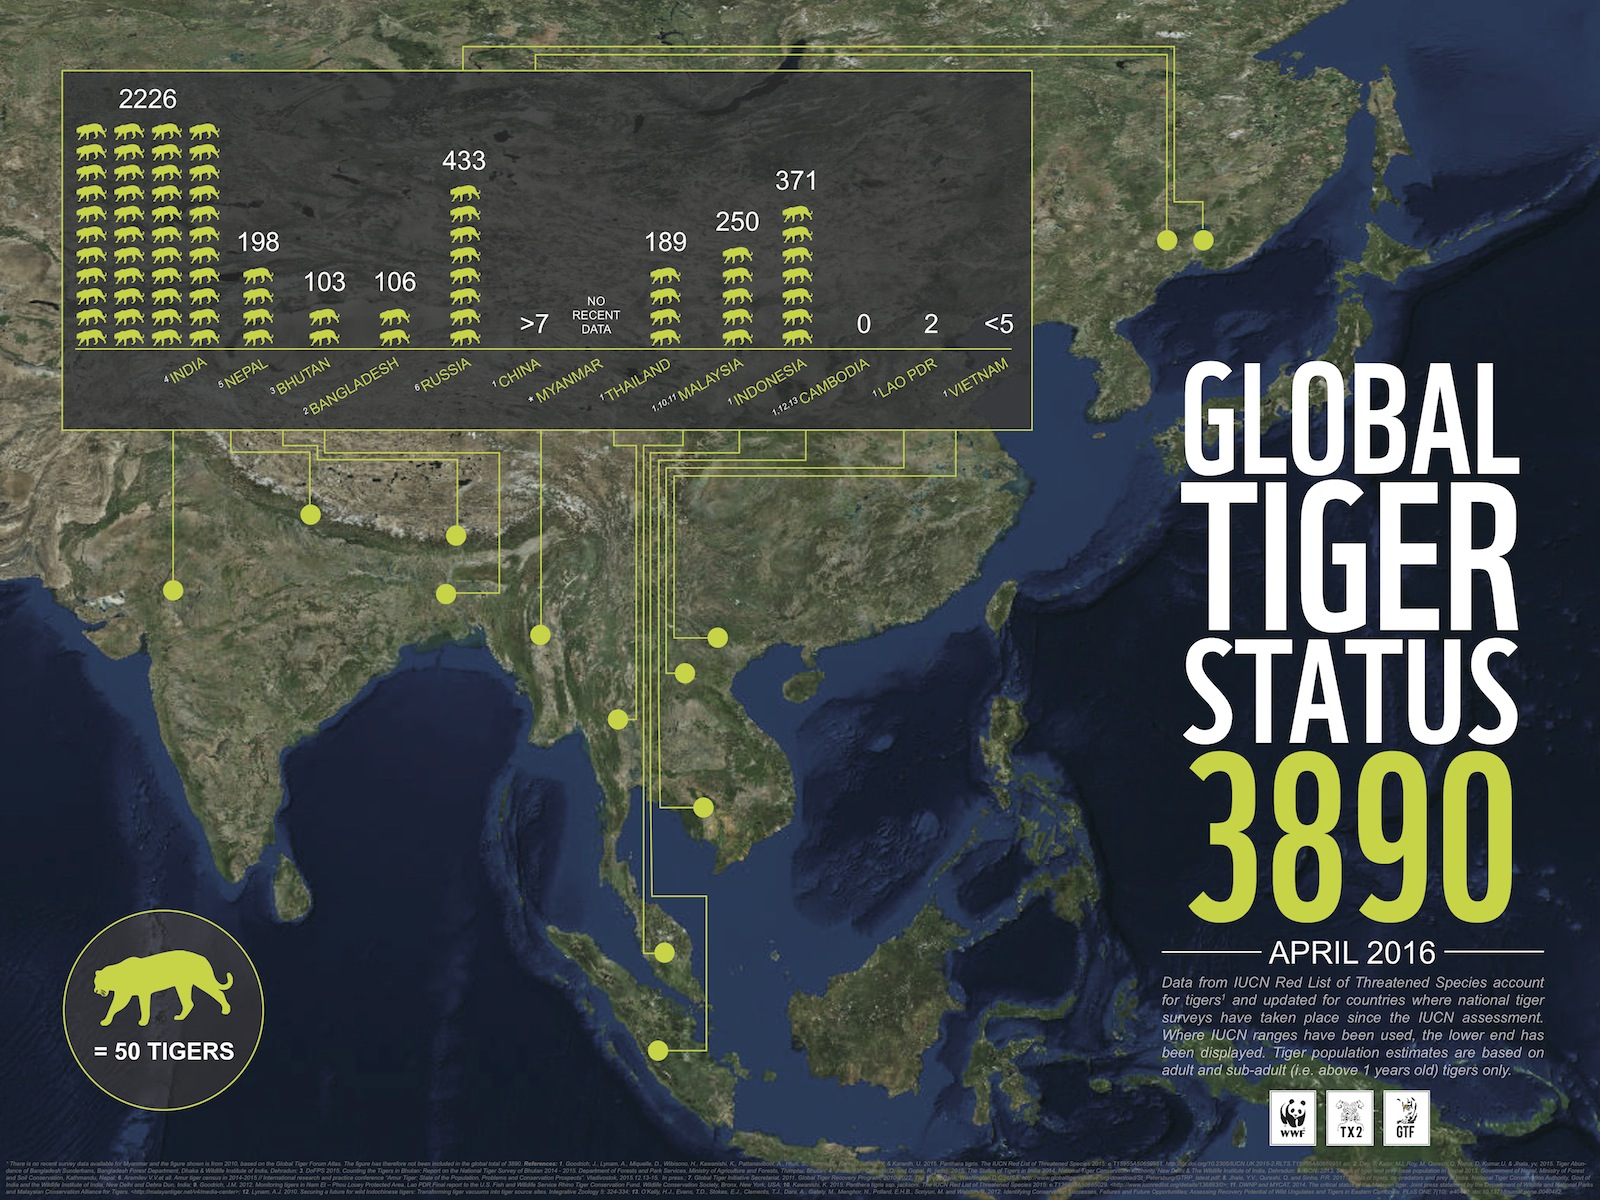 wwf Infographic--Global-Tiger-Status---April-2016_HI